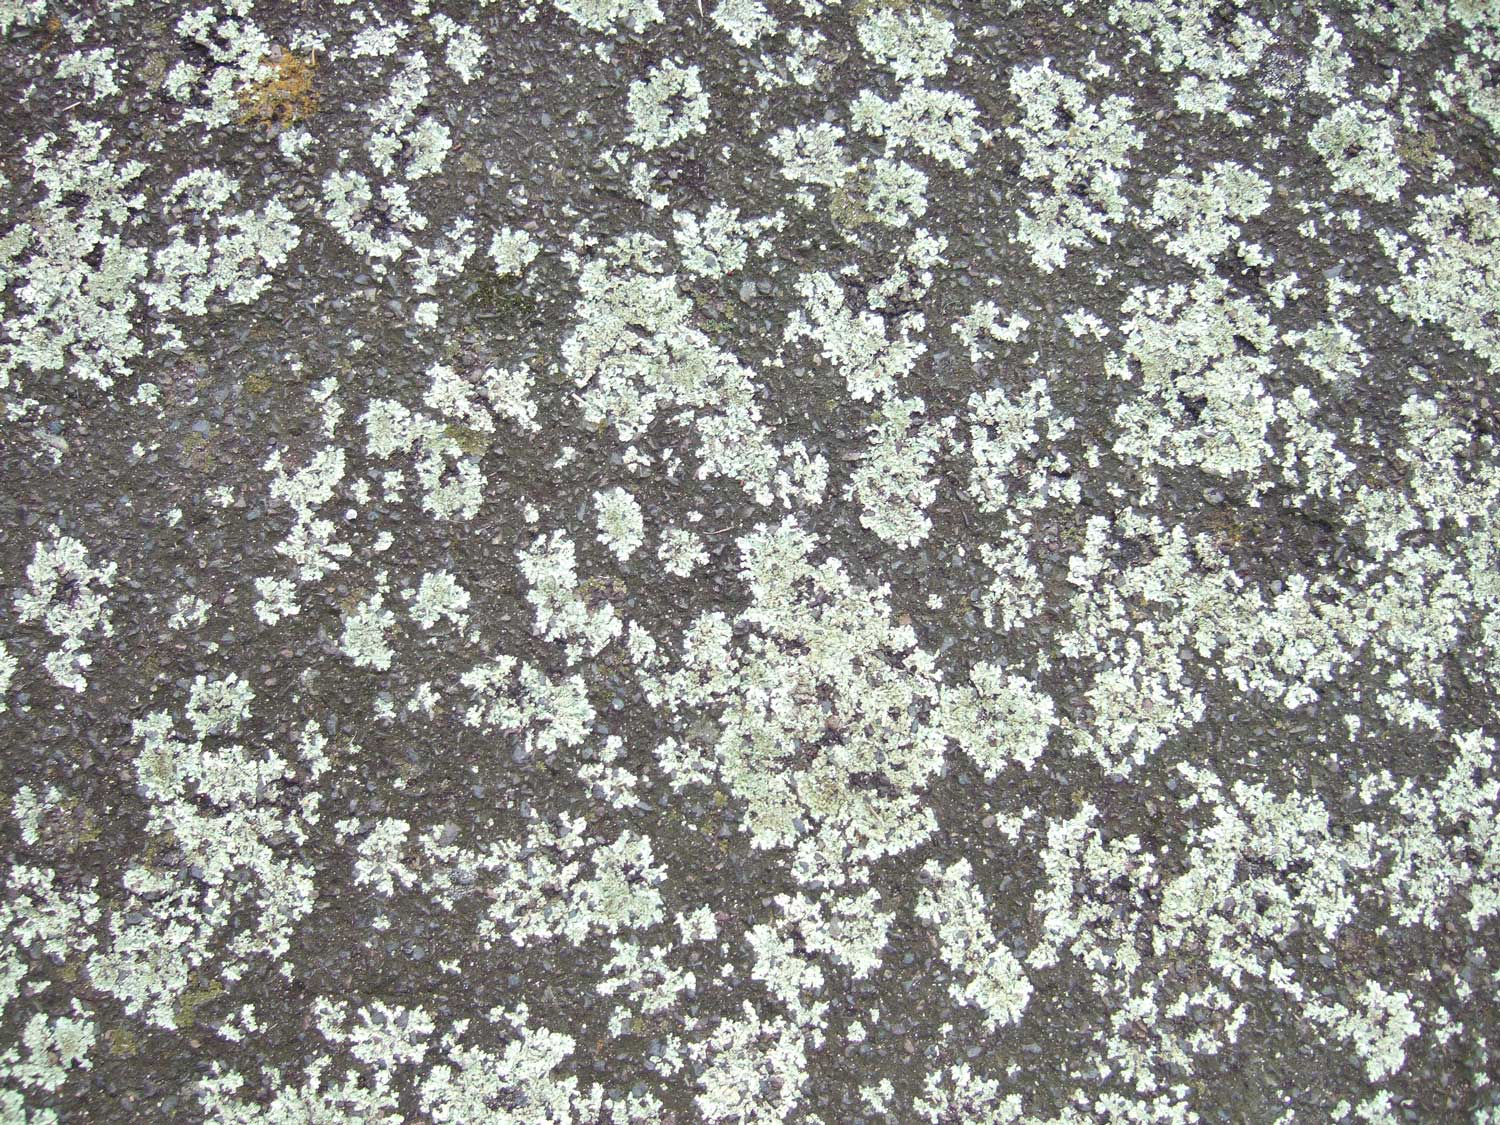 lichen-on-path